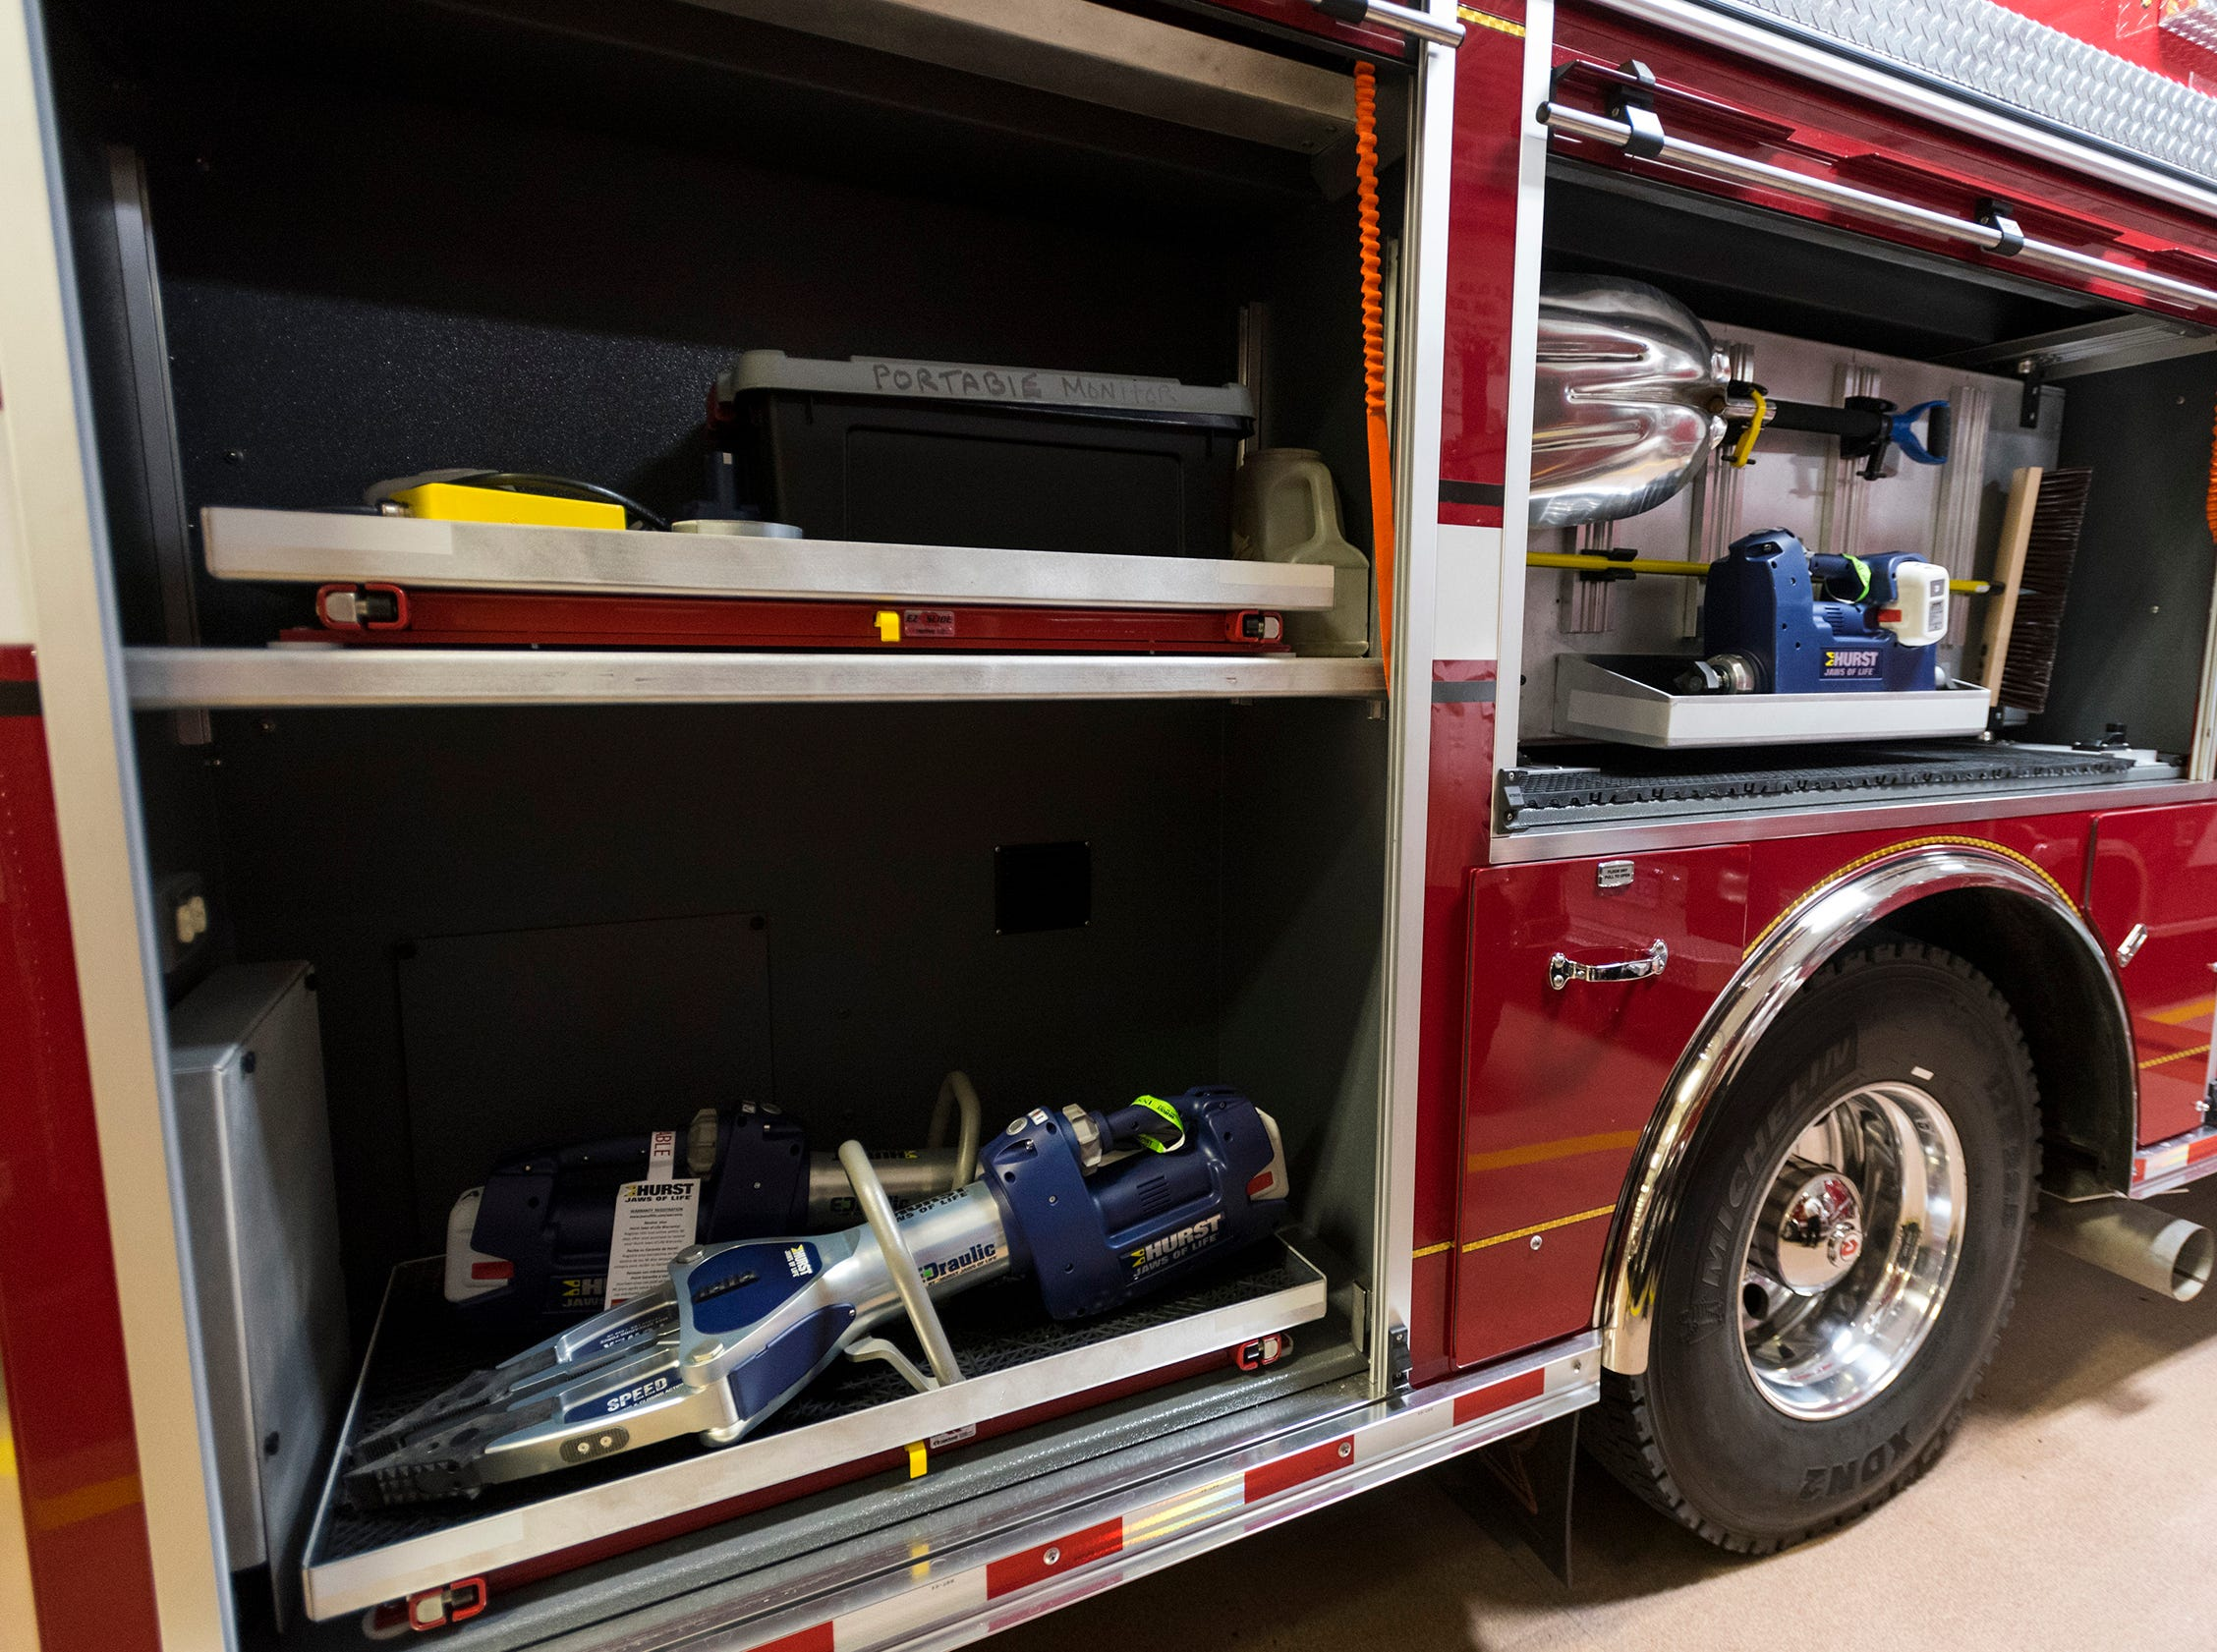 The St. Clair Fire Department's new truck is equipment with a complete new set of jaws of life, including spreaders, cutters and a new ram.